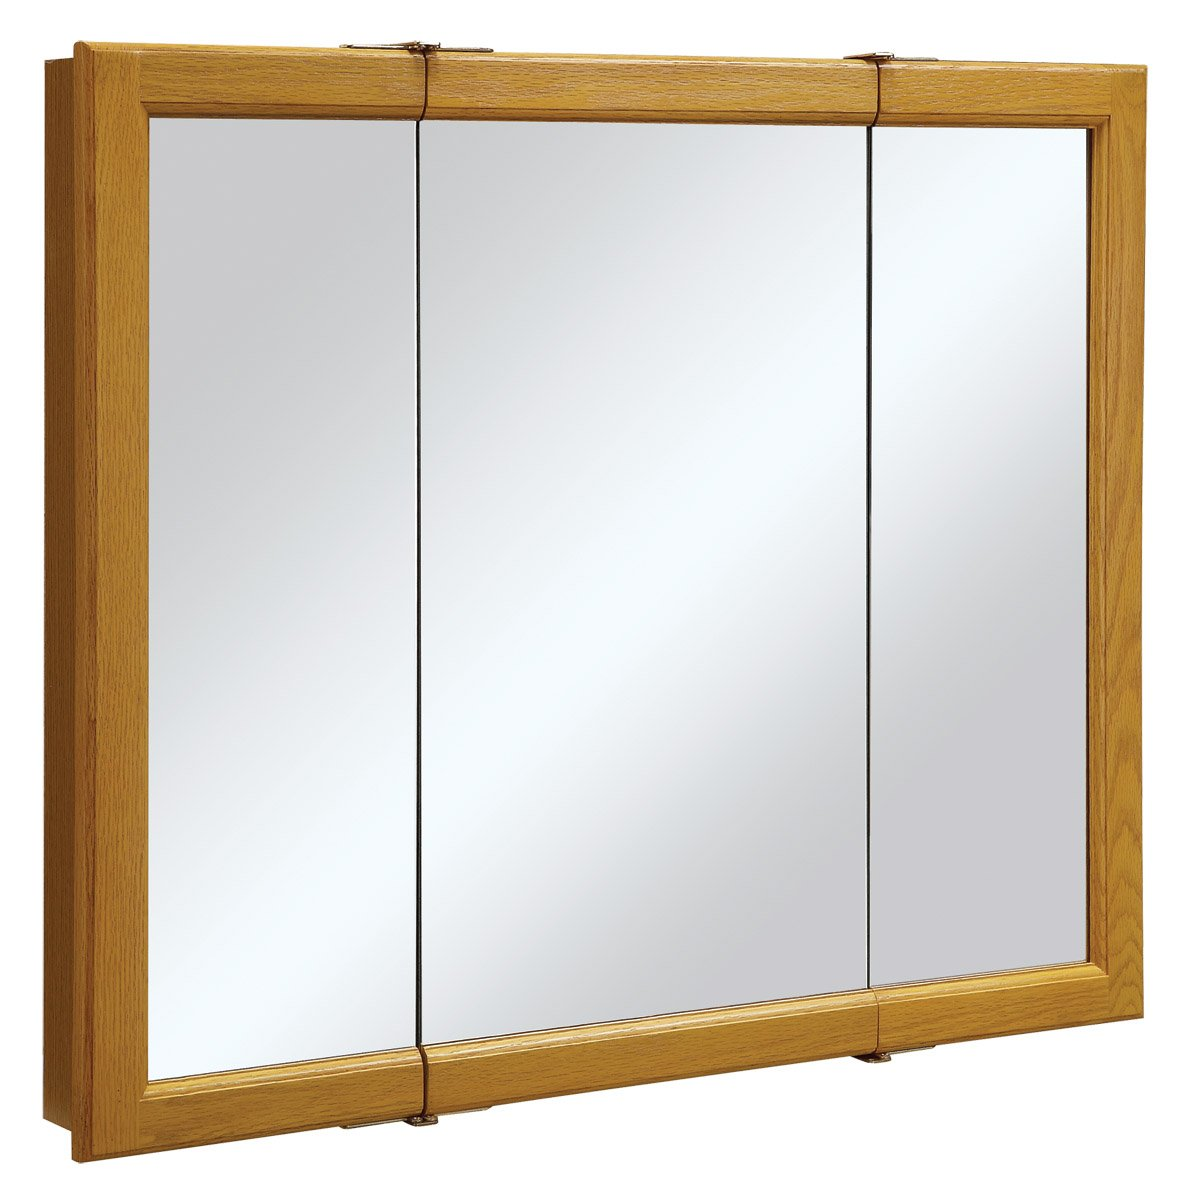 Design House 545285 Claremont Honey Oak Tri-View Medicine Cabinet Mirror with 3-Doors, 36-Inches by 30-Inches